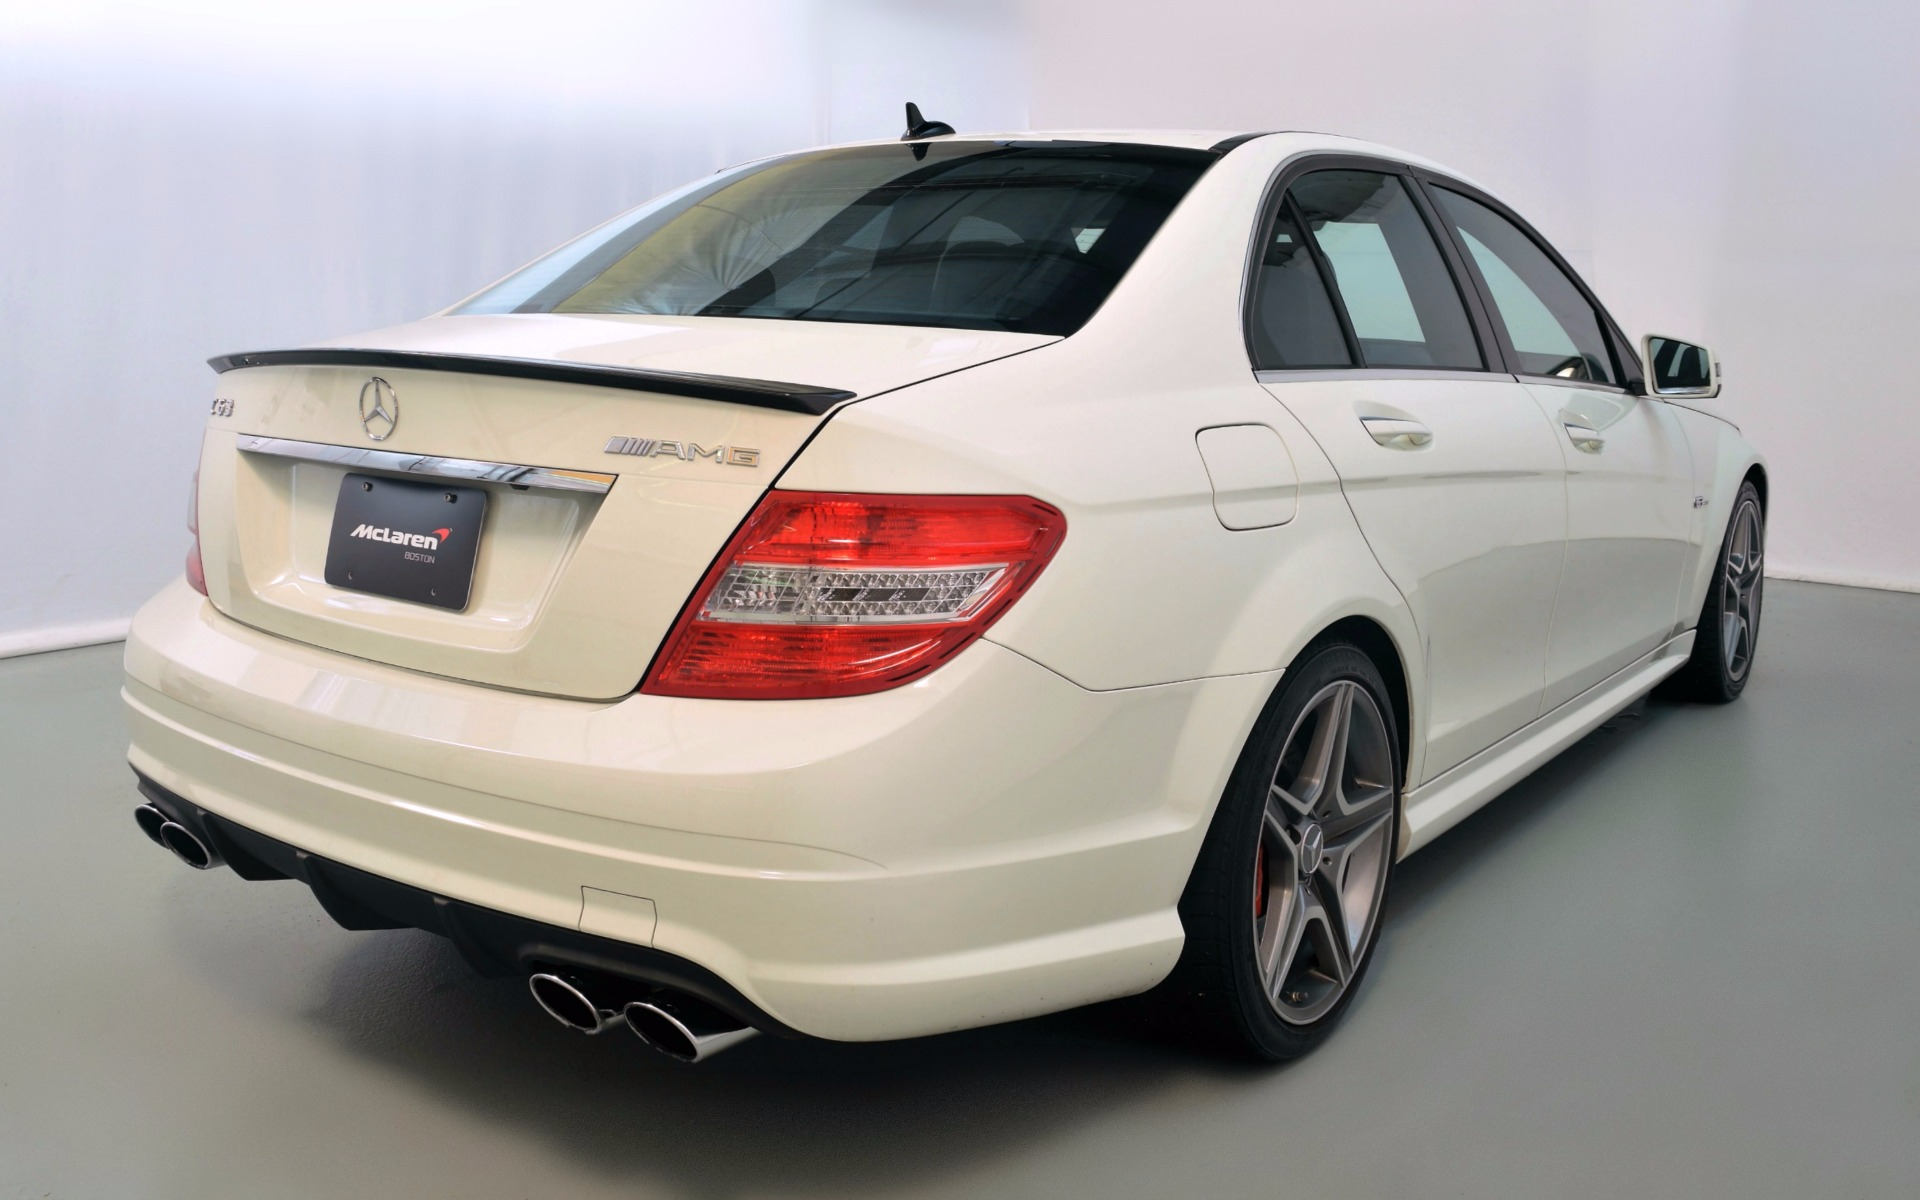 Used Mclaren For Sale >> 2011 Mercedes-Benz C-Class C63 AMG For Sale in Norwell, MA